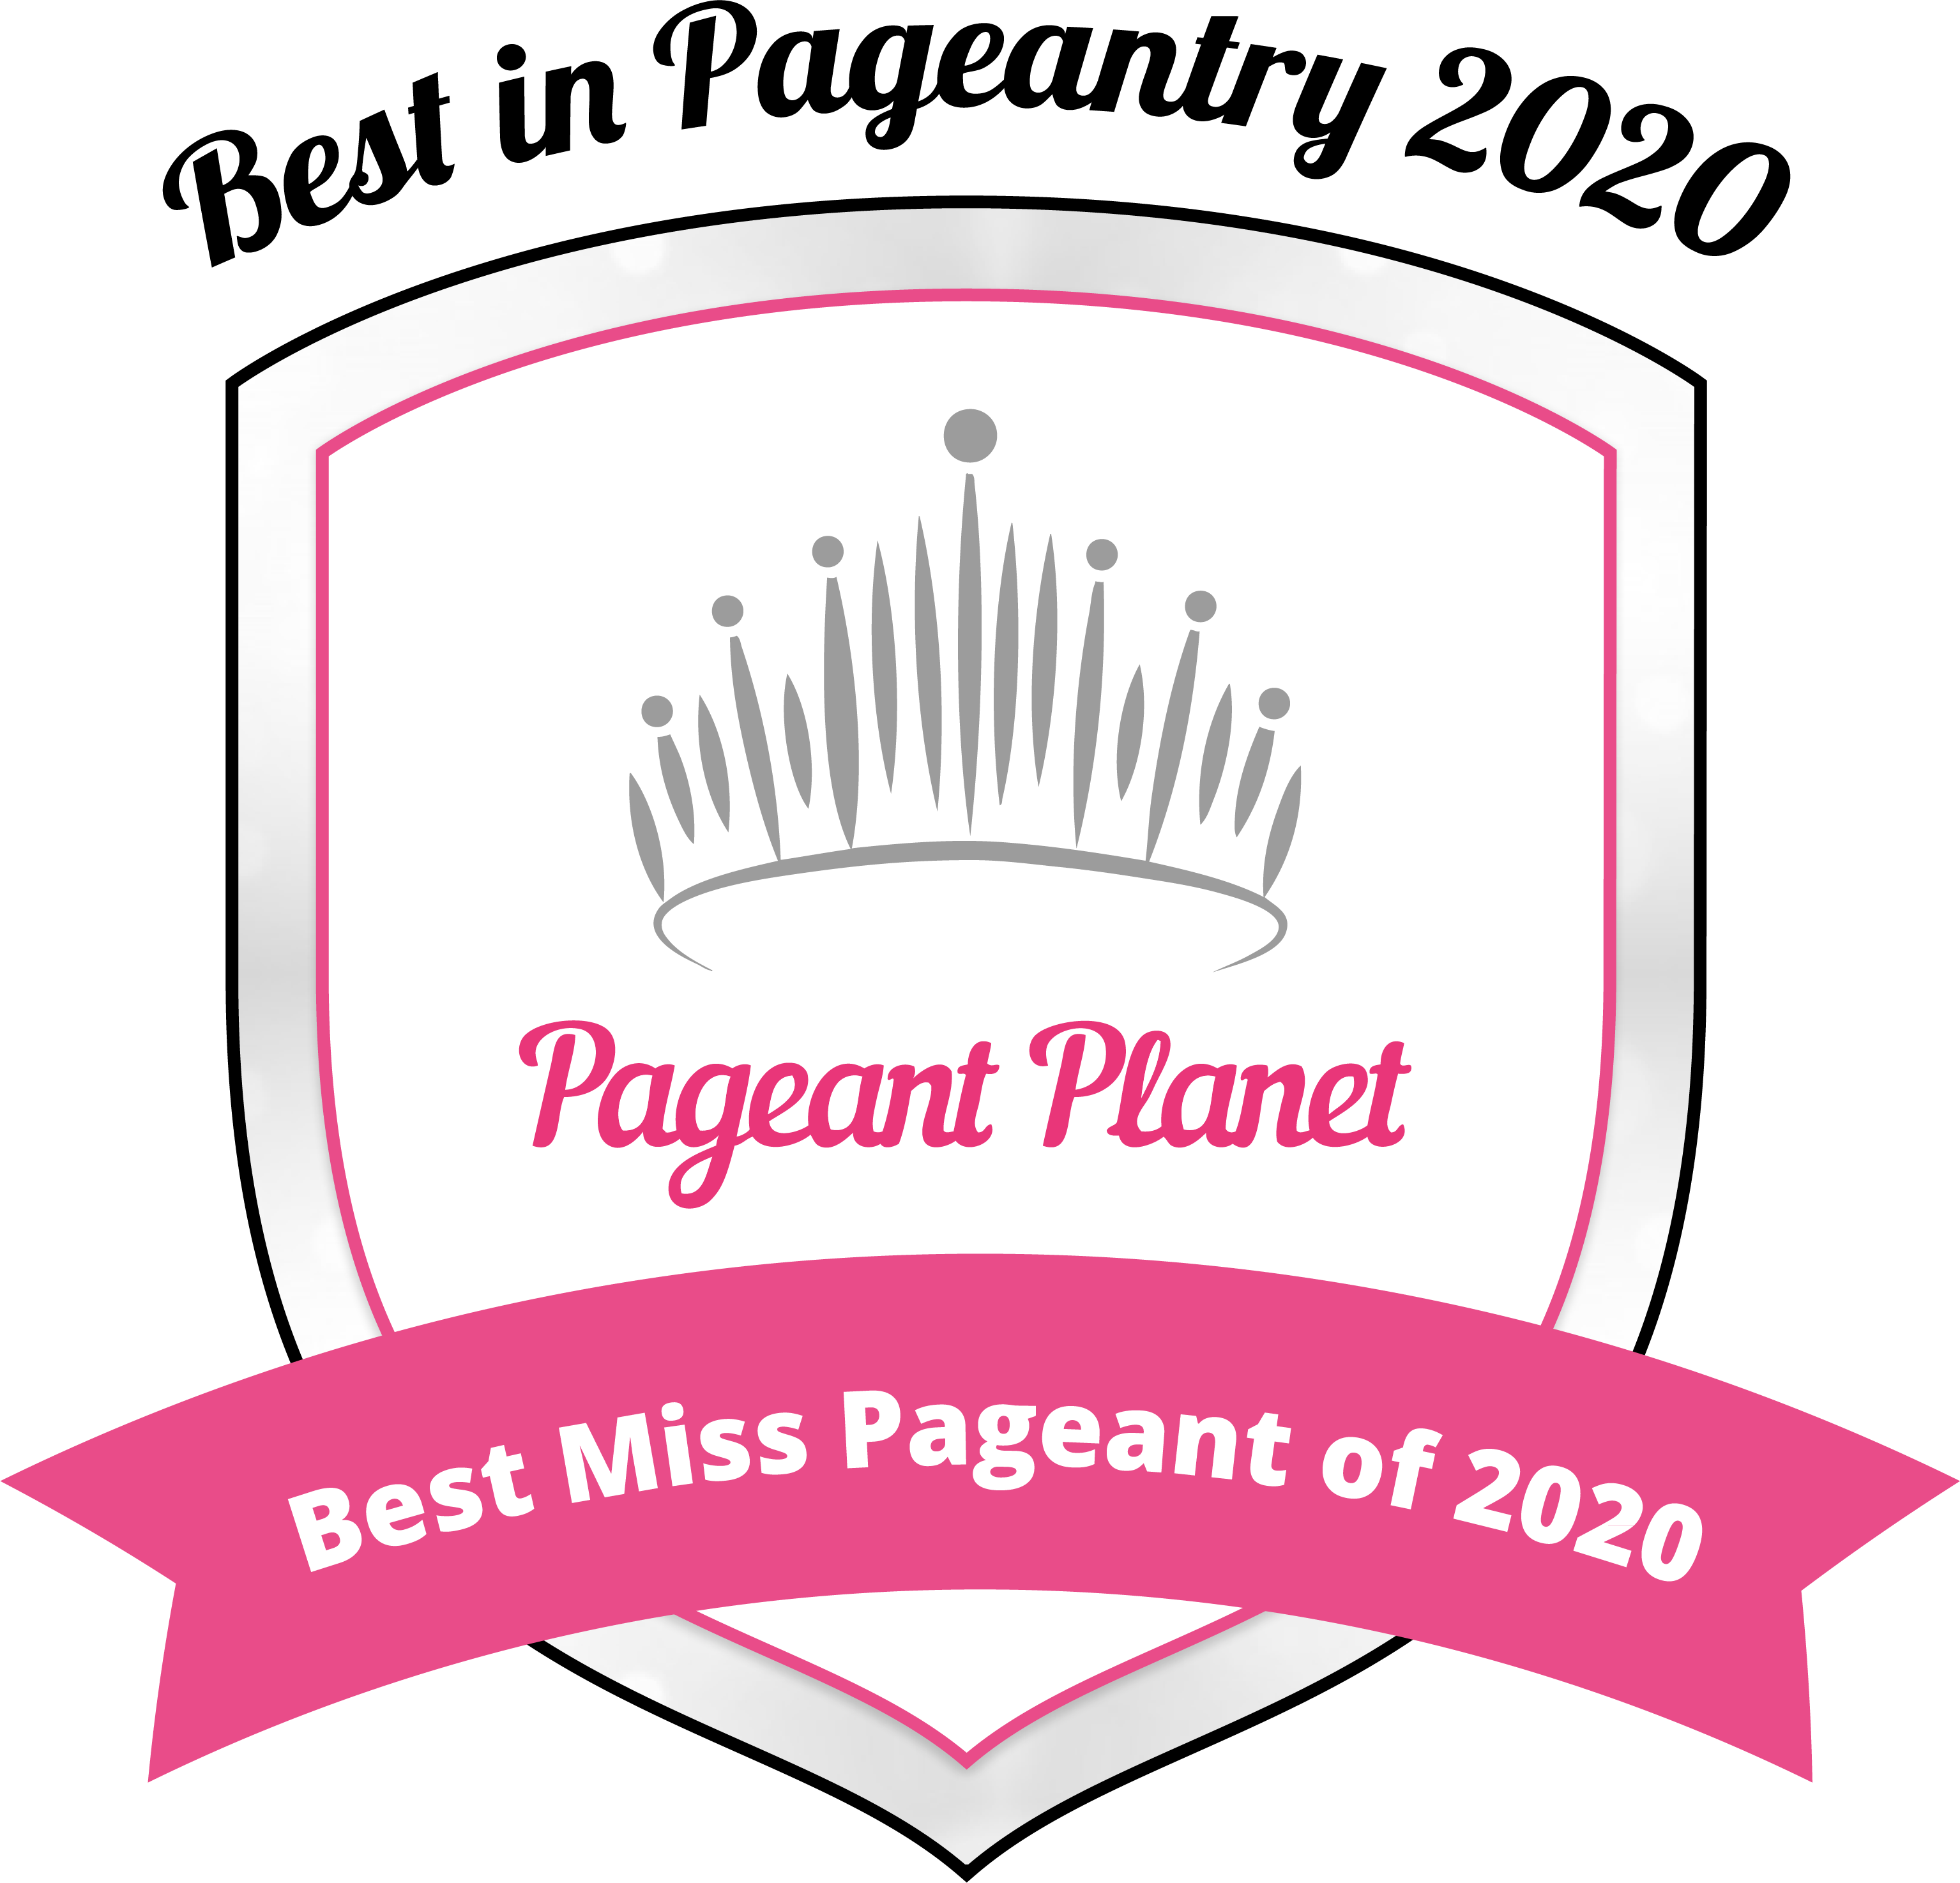 Best Miss Pageant of 2020